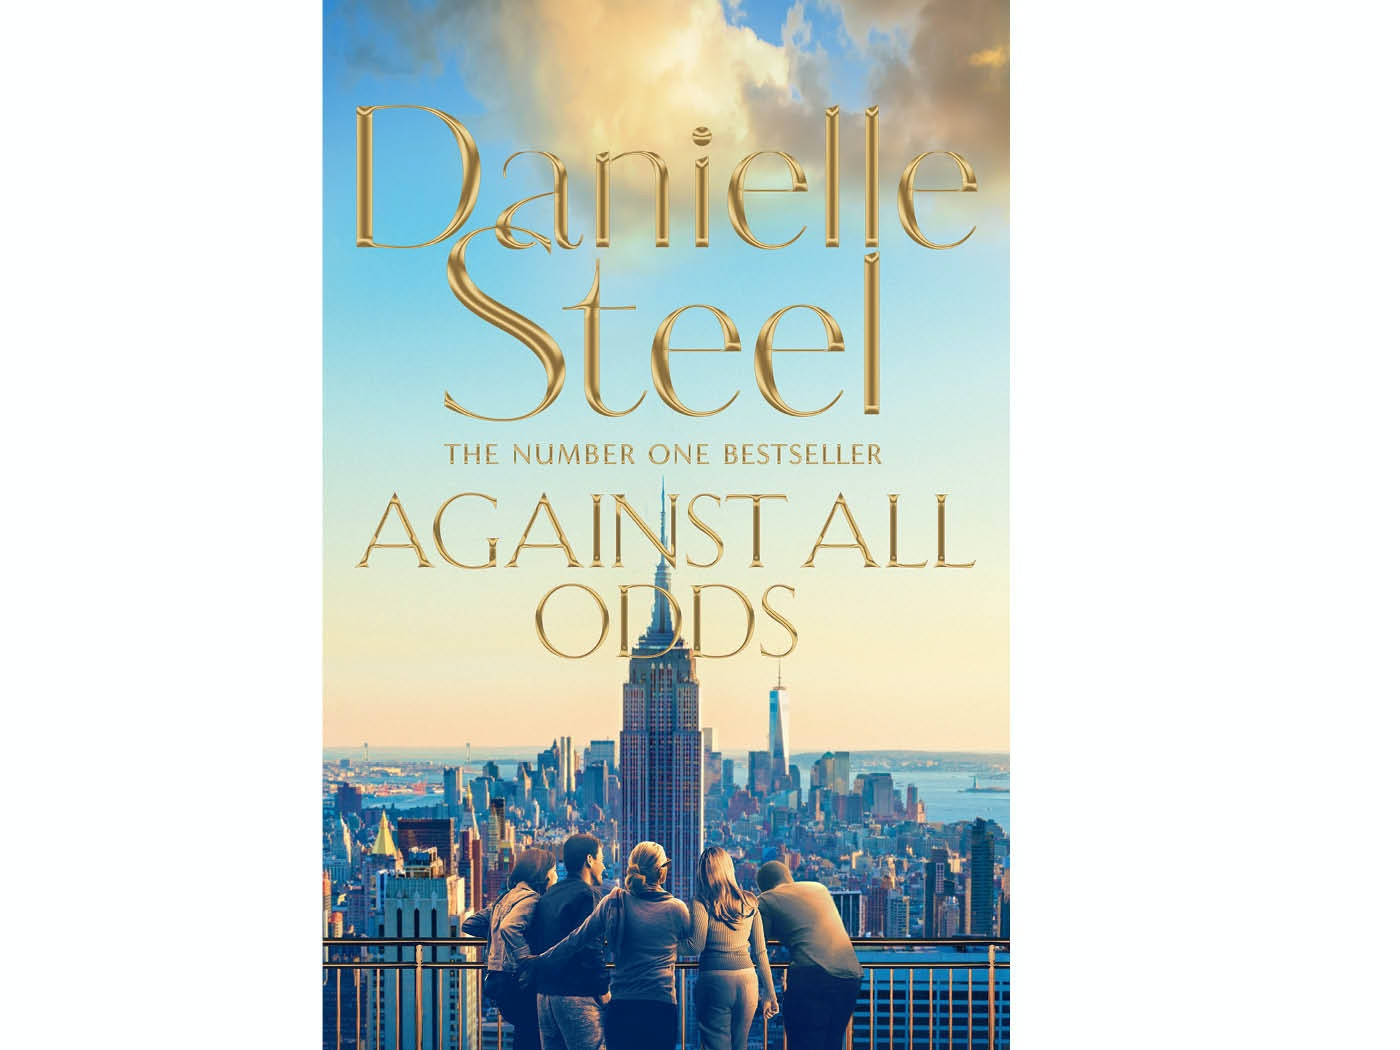 Against All Odds Books by Danielle Steel sweepstakes